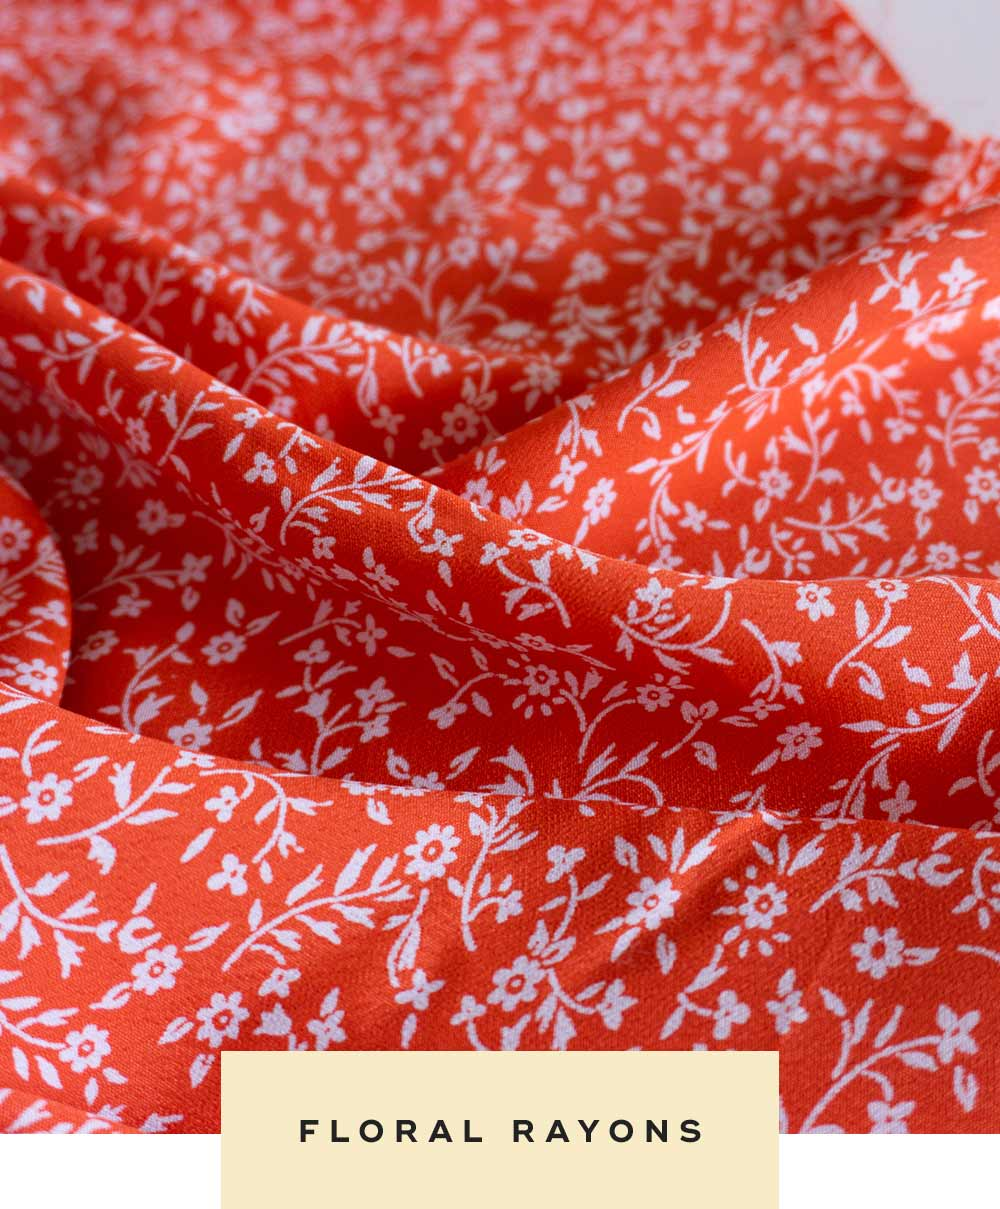 Floral rayons from Sew DIY